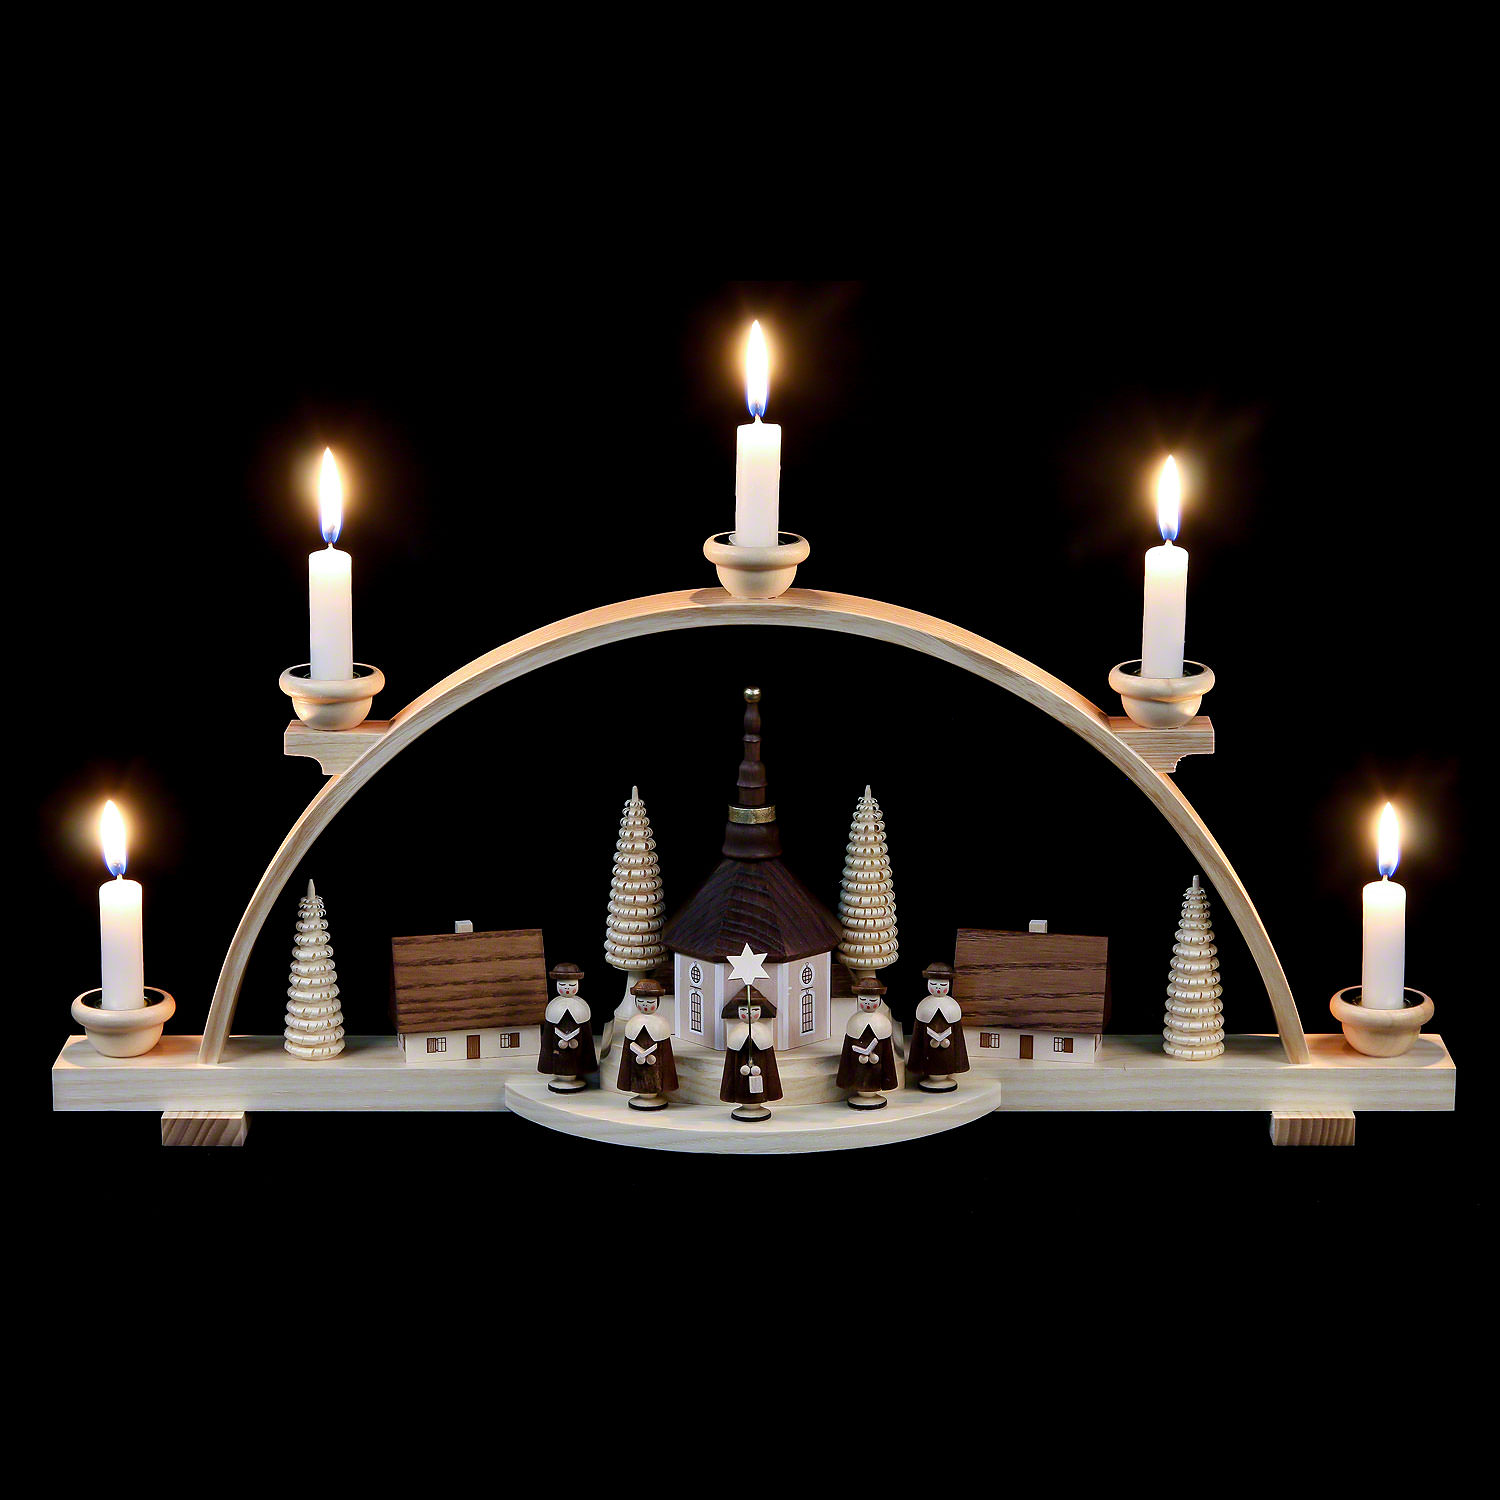 Candle Arch Carolers 47 cm 19in by Müller Kleinkunst